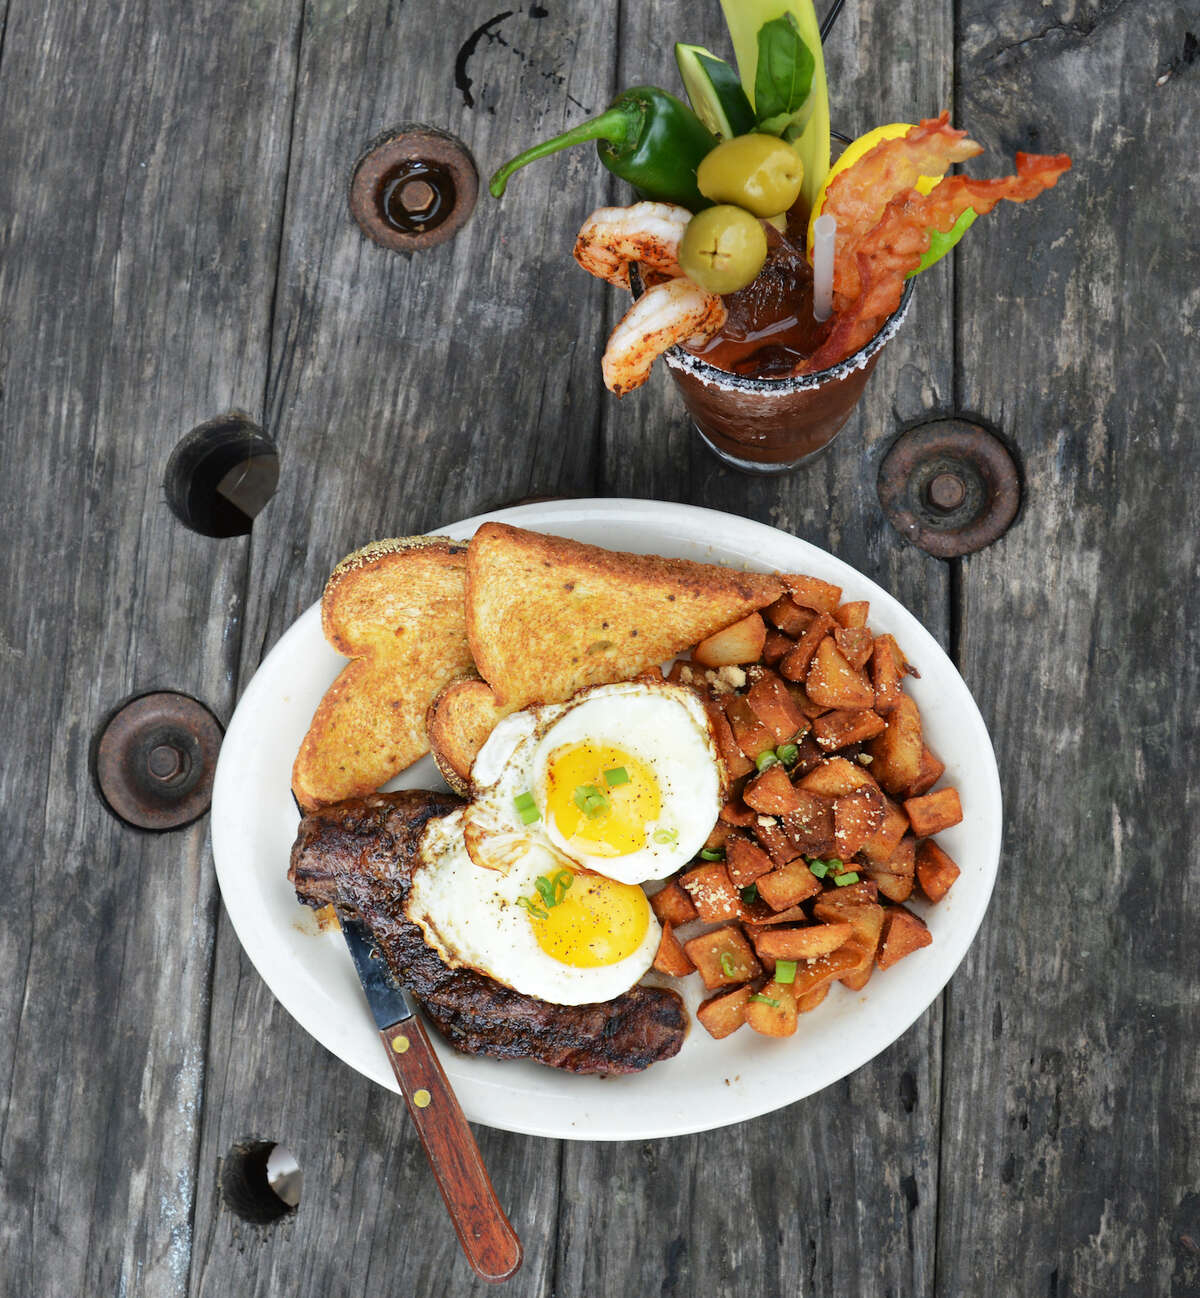 Doc's Bar &ill has launched a new brunch menu. Shown: New York strip steak and eggs.